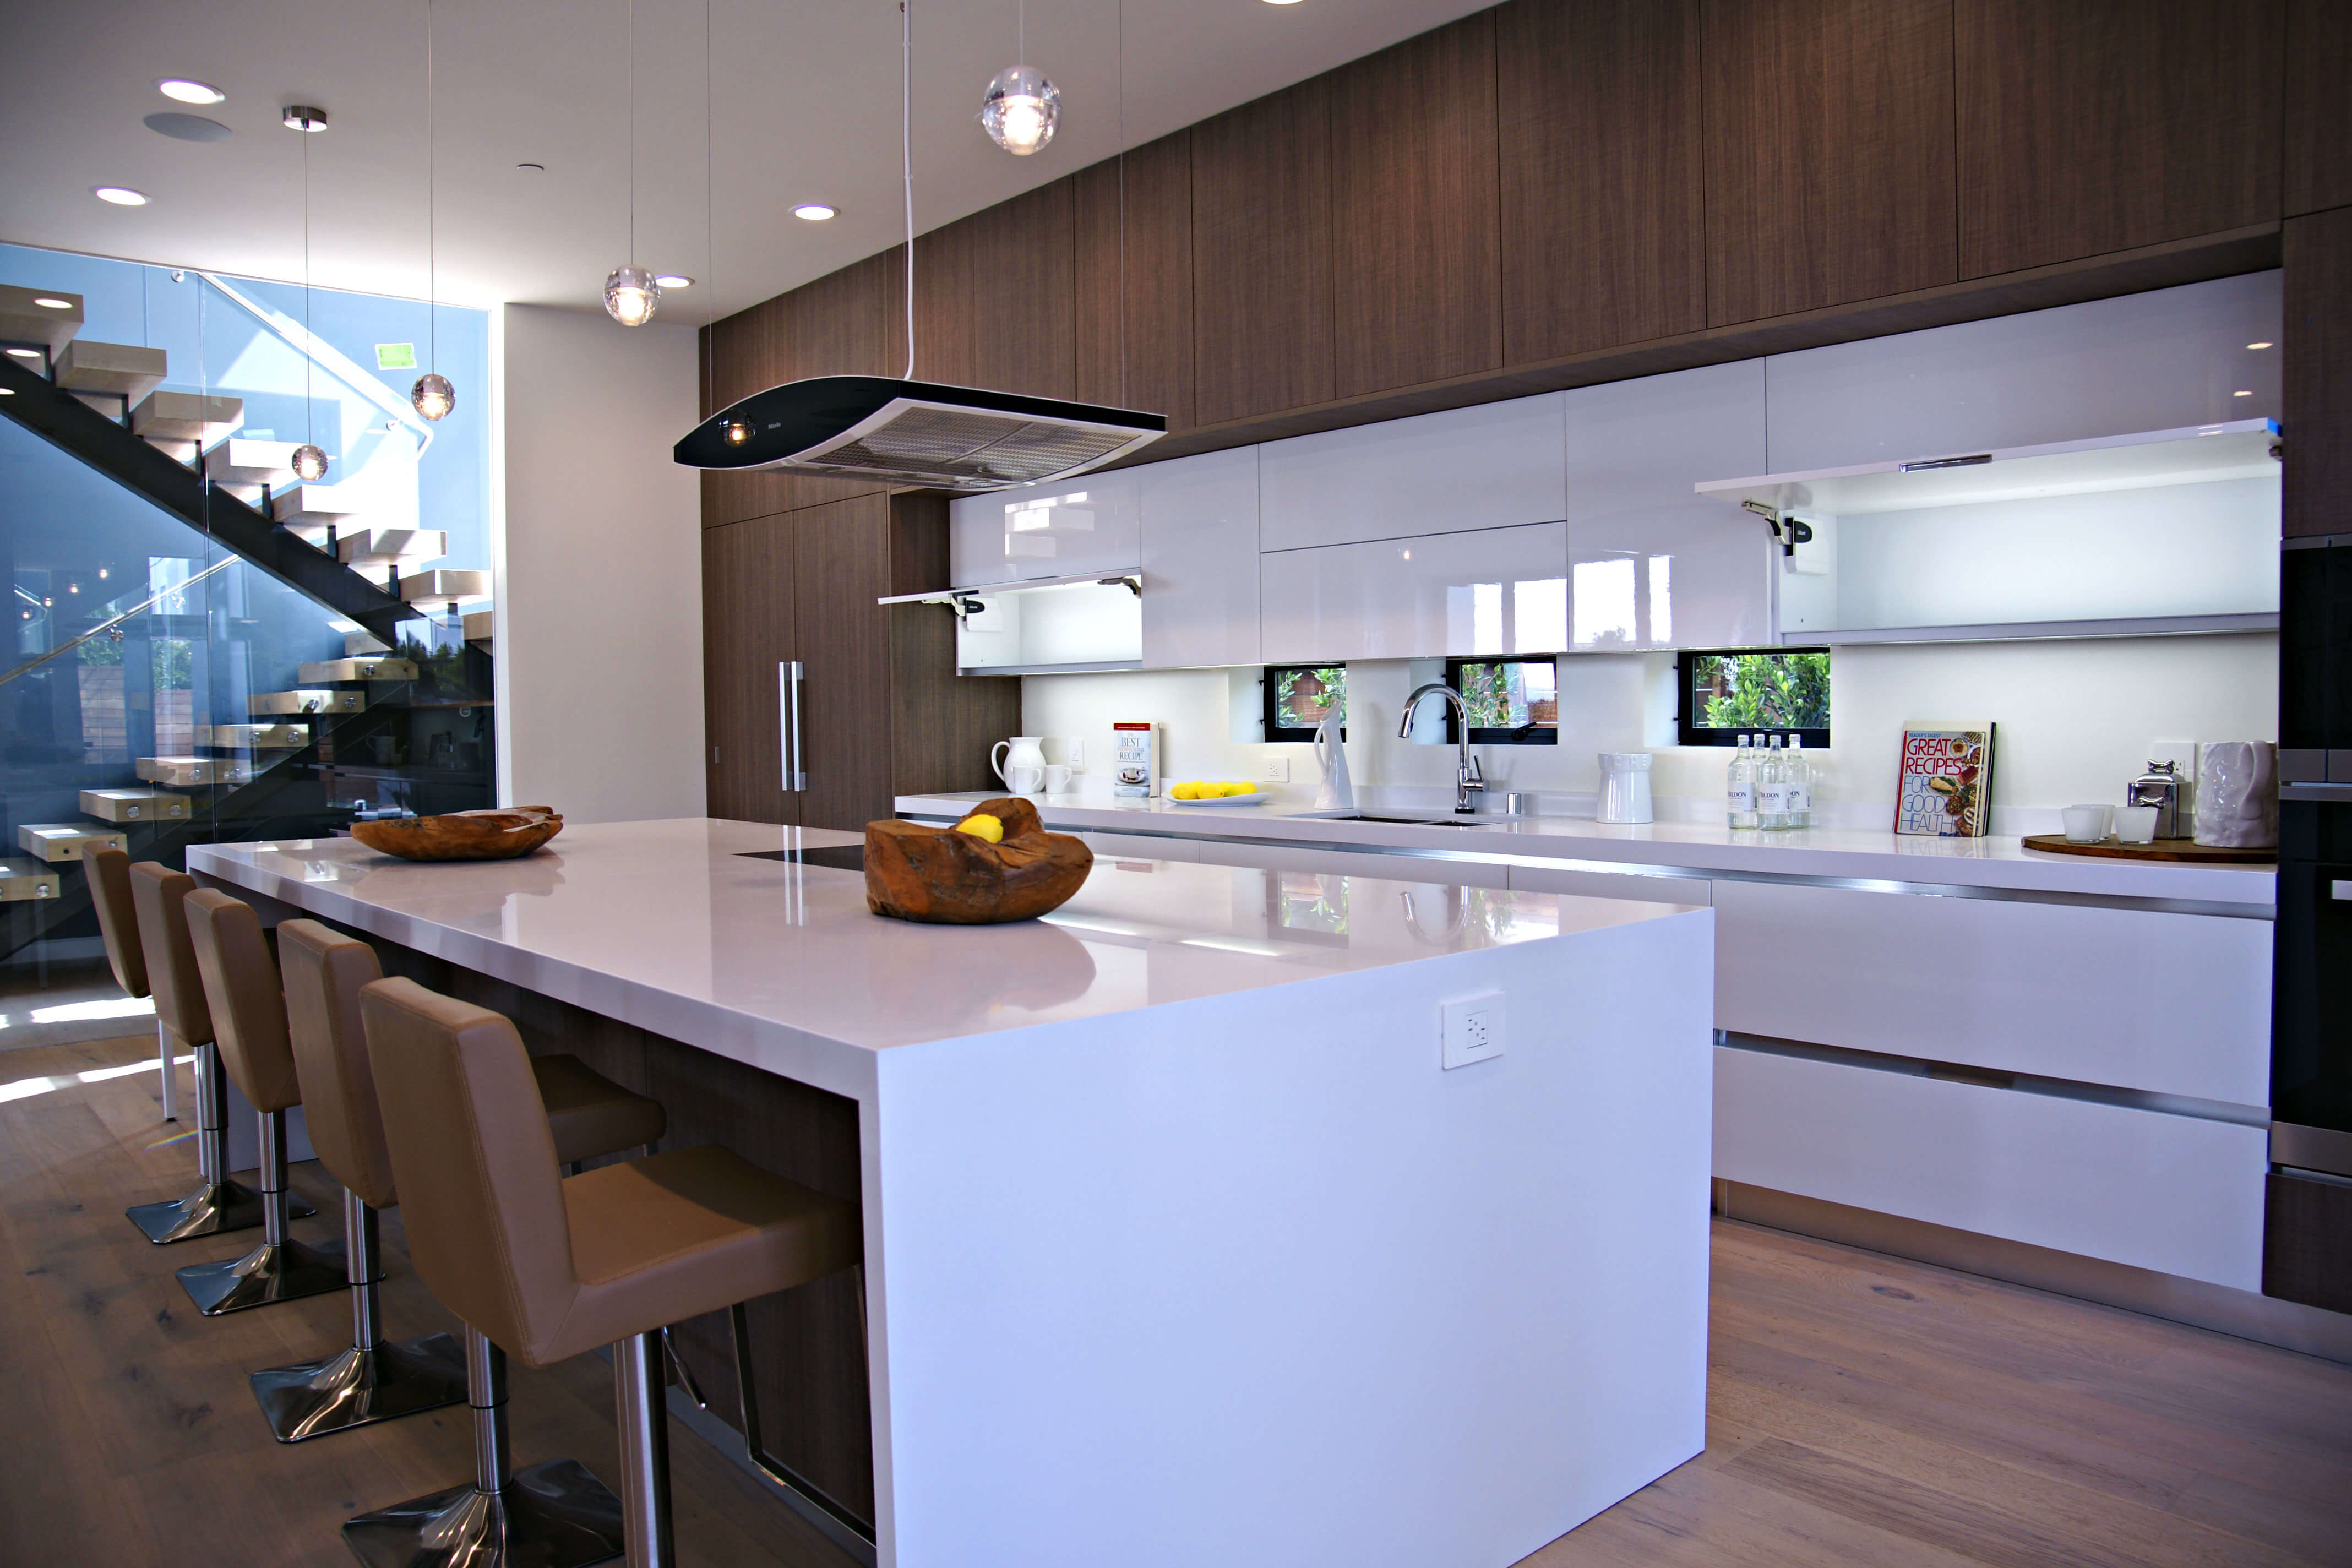 eurostyle kitchen cabinets mobile island european euro style cabinetry by design